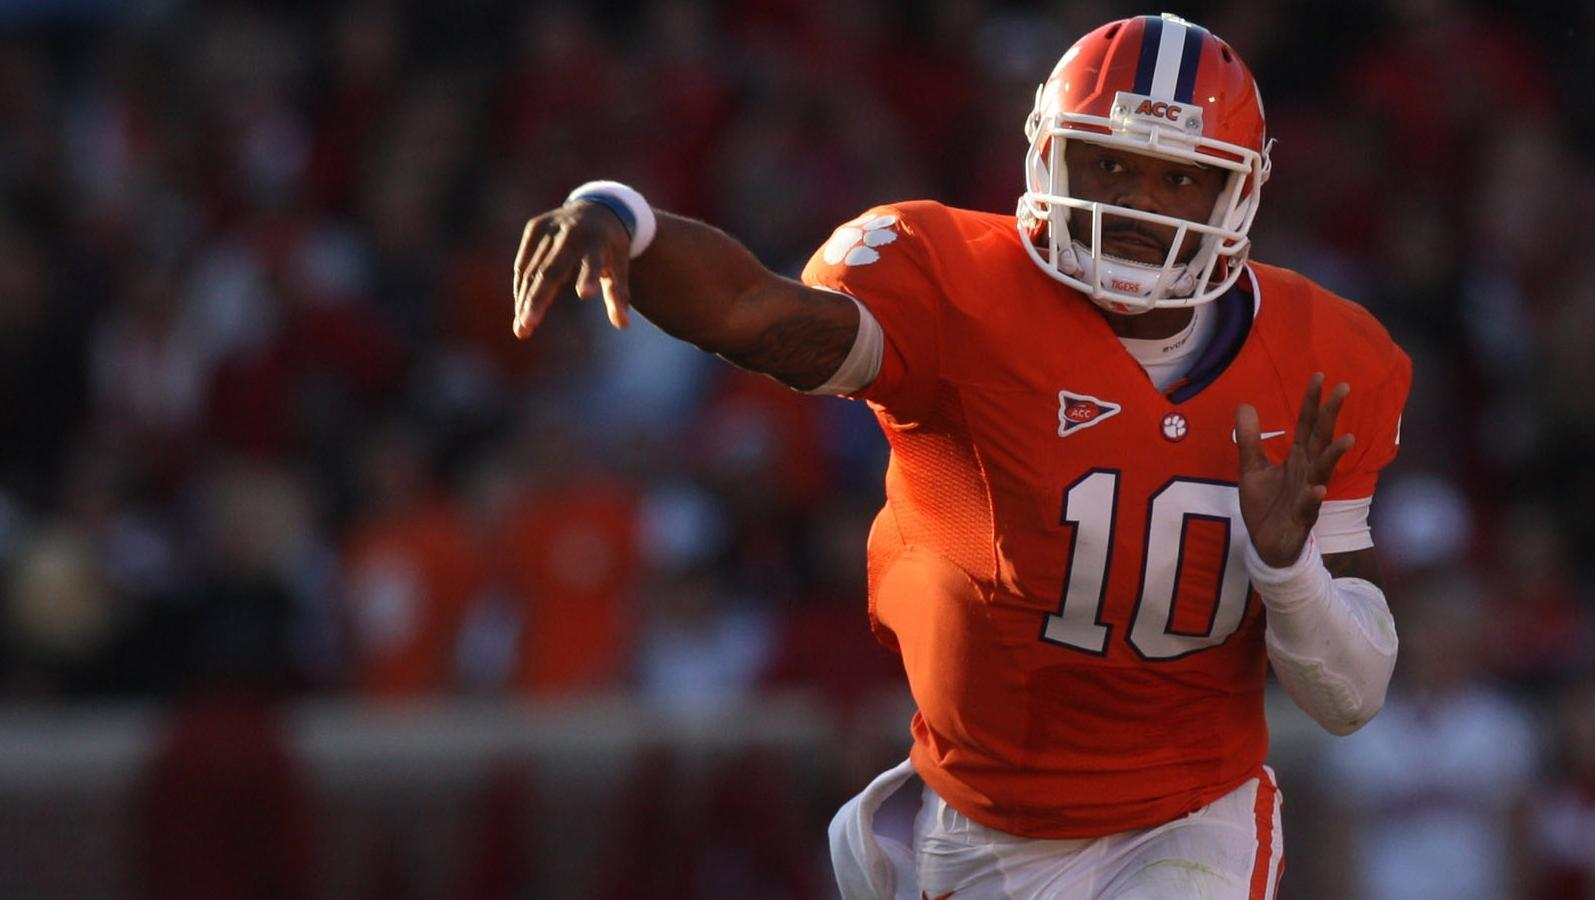 Boyd Named ACC Player of the Year